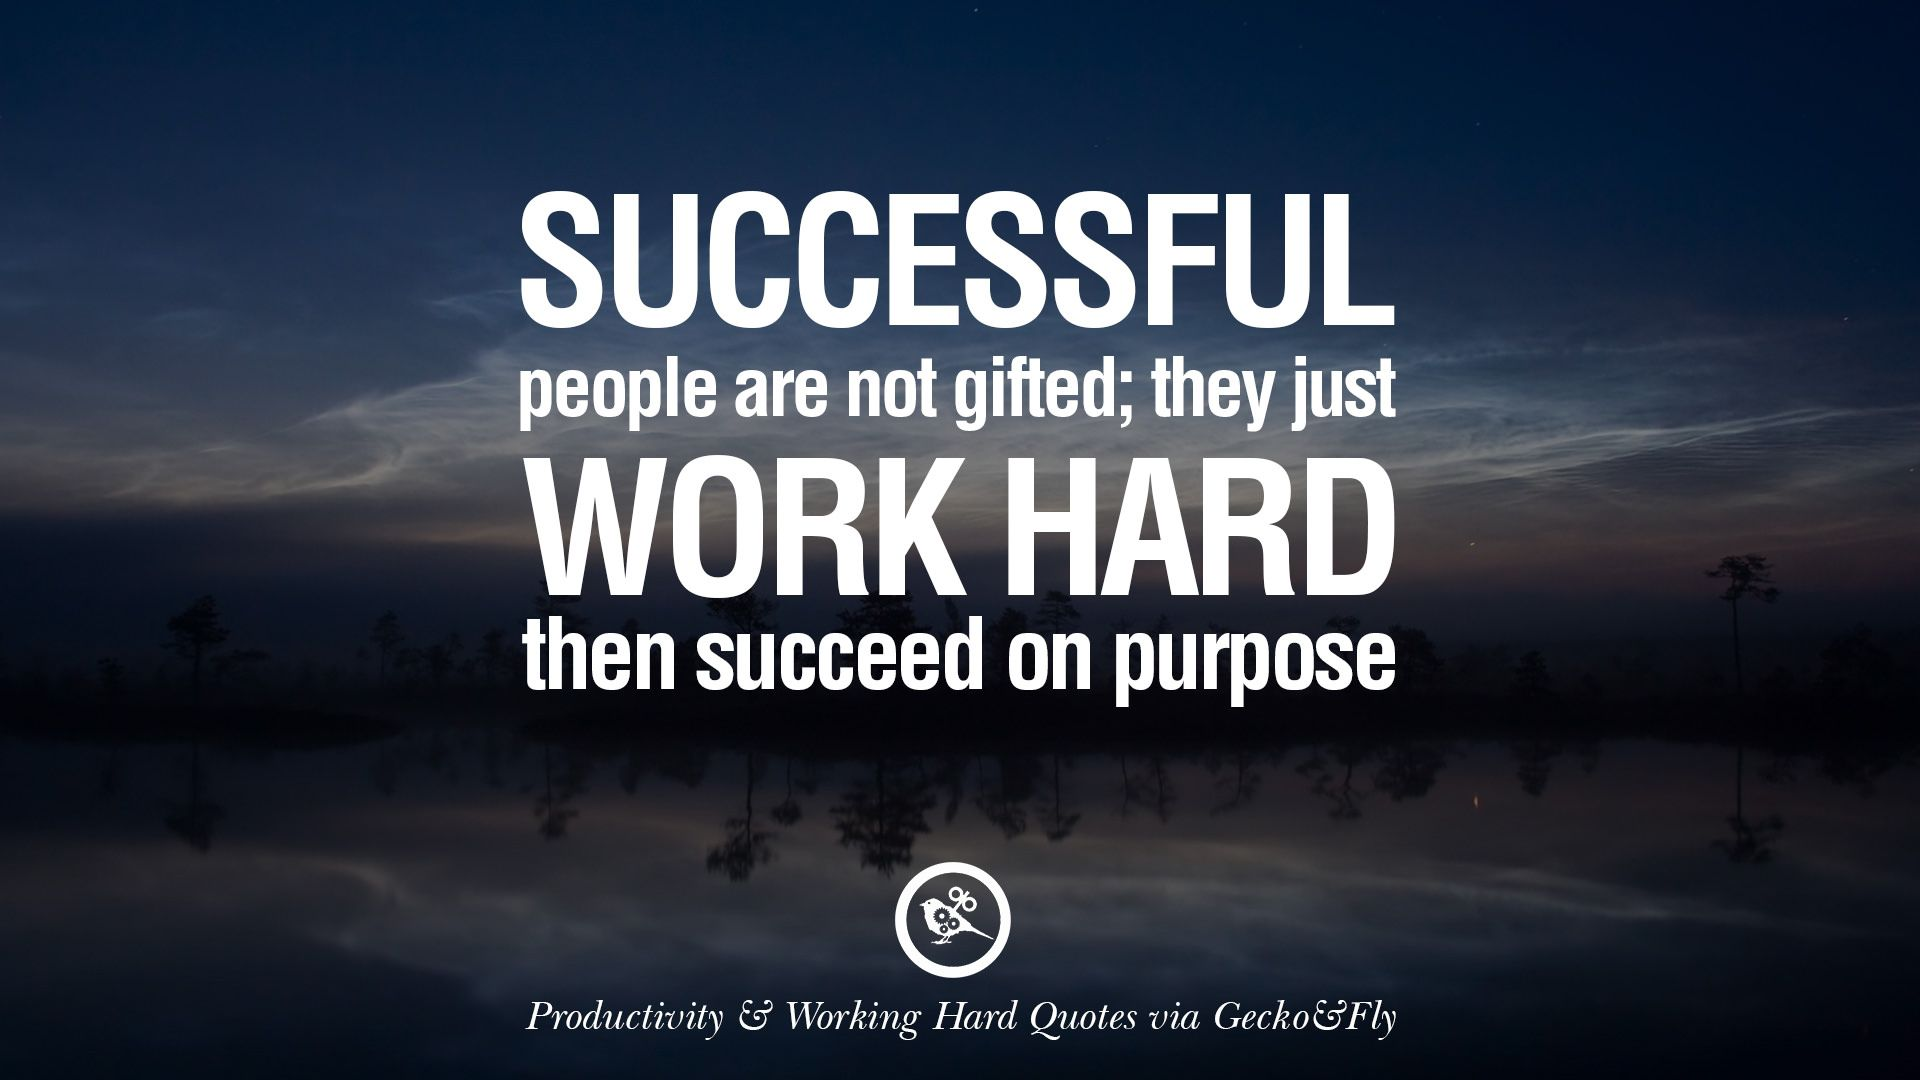 Work Hard Quotes Successful People Are Not Gifted They Just Work Hard Then Succeed